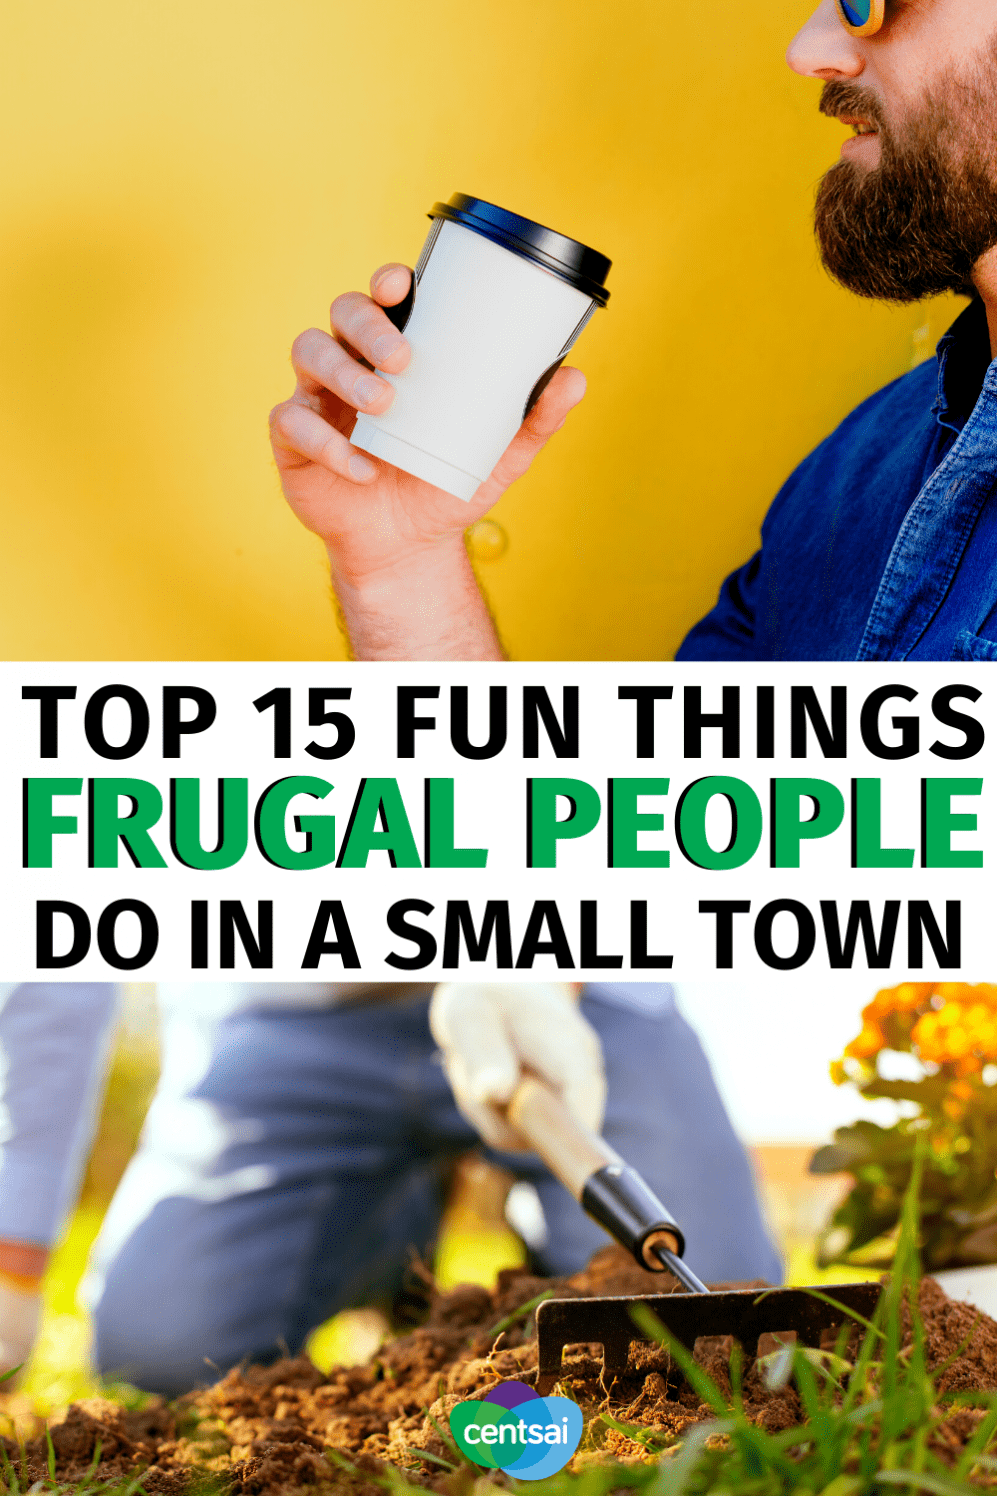 Top 15 FUN Things Frugal People Do in a Small Town